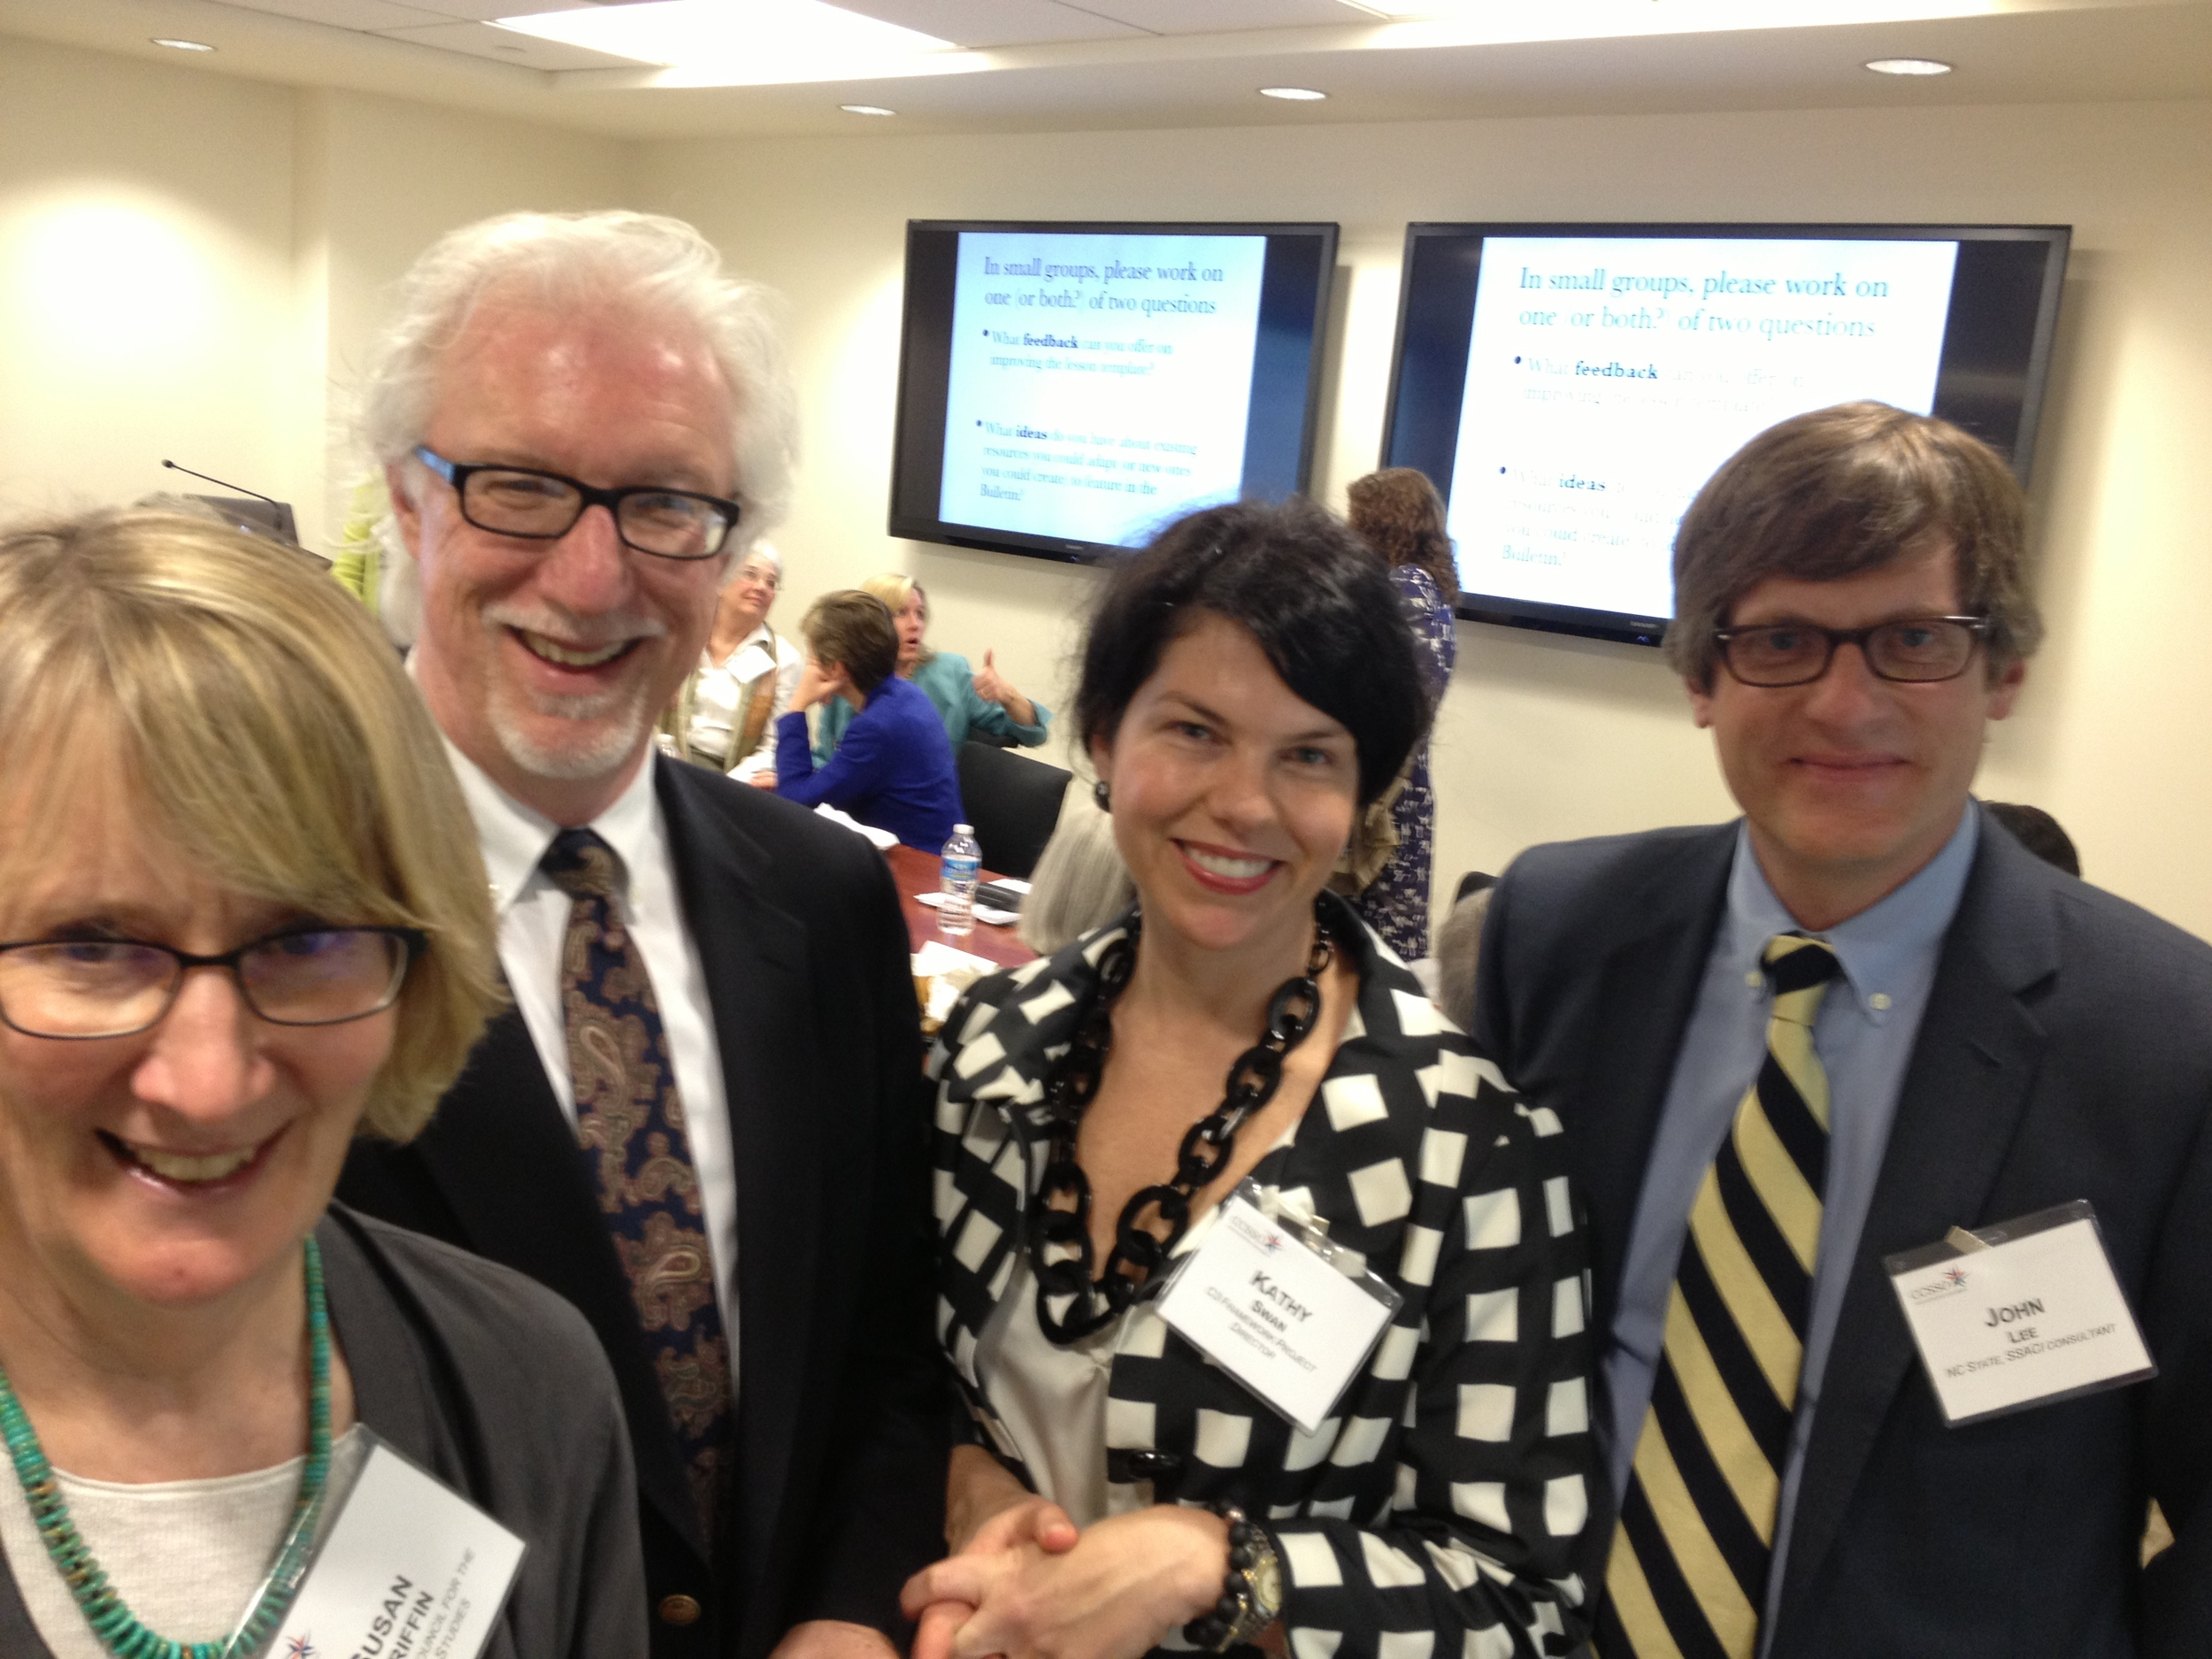 Susan Griffin of NCSS with SG Grant, Kathy Swan, and Jon Lee of the C3 Framework team -